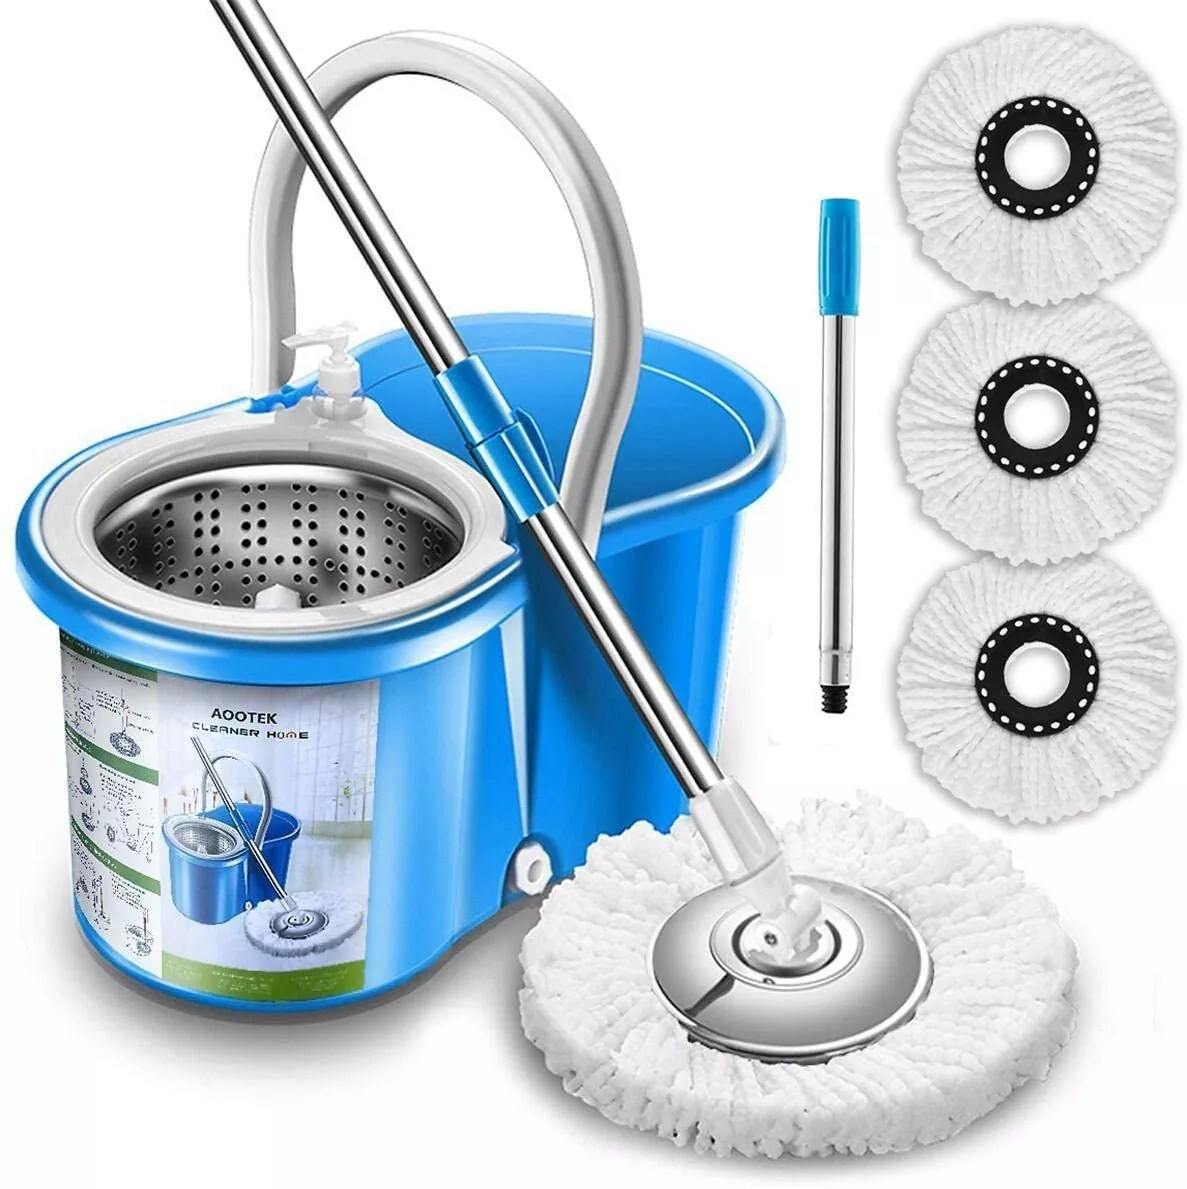 Aootek Upgraded Stainless Steel Deluxe 360 Spin Mop & Bucket Floor Cleaning System